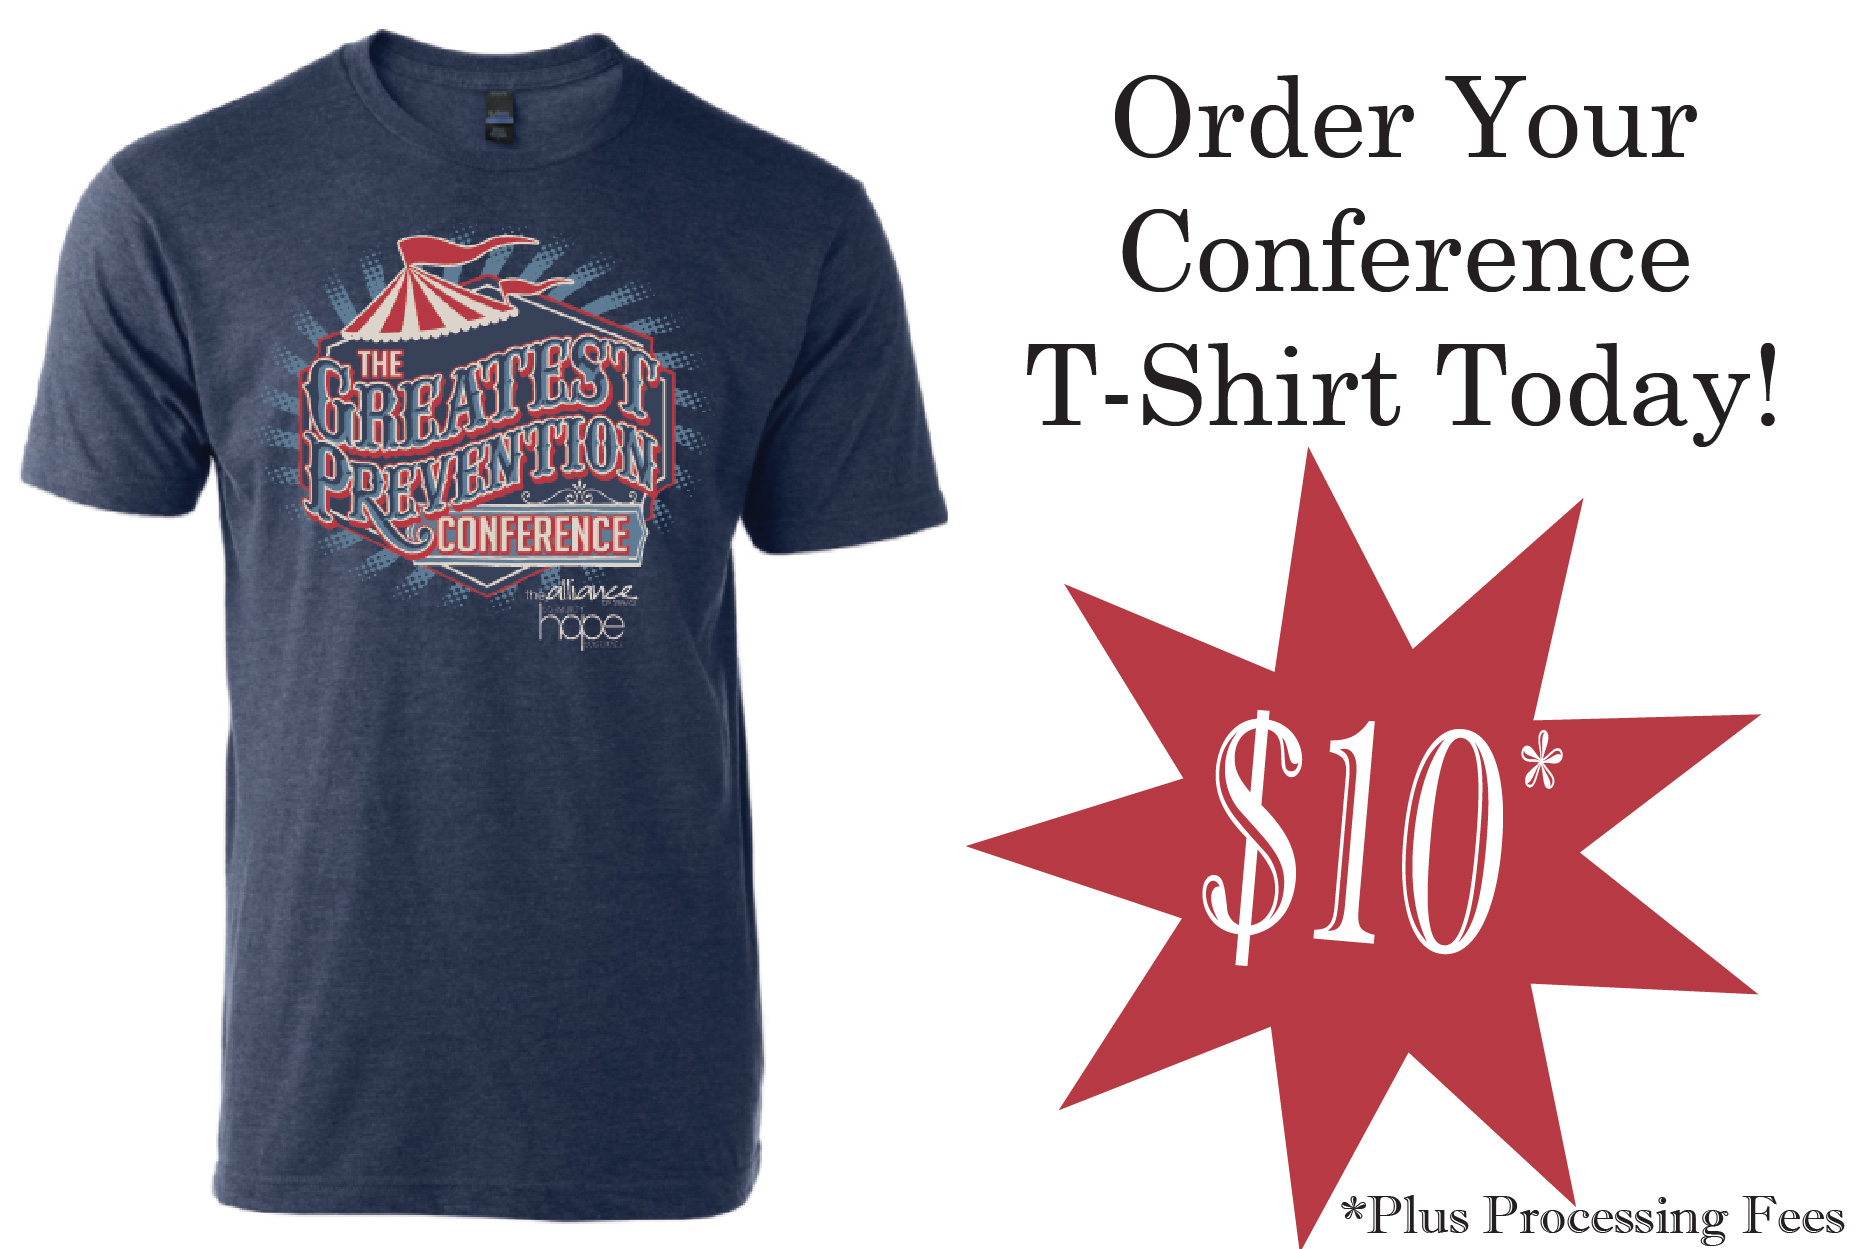 Buy your shirt today